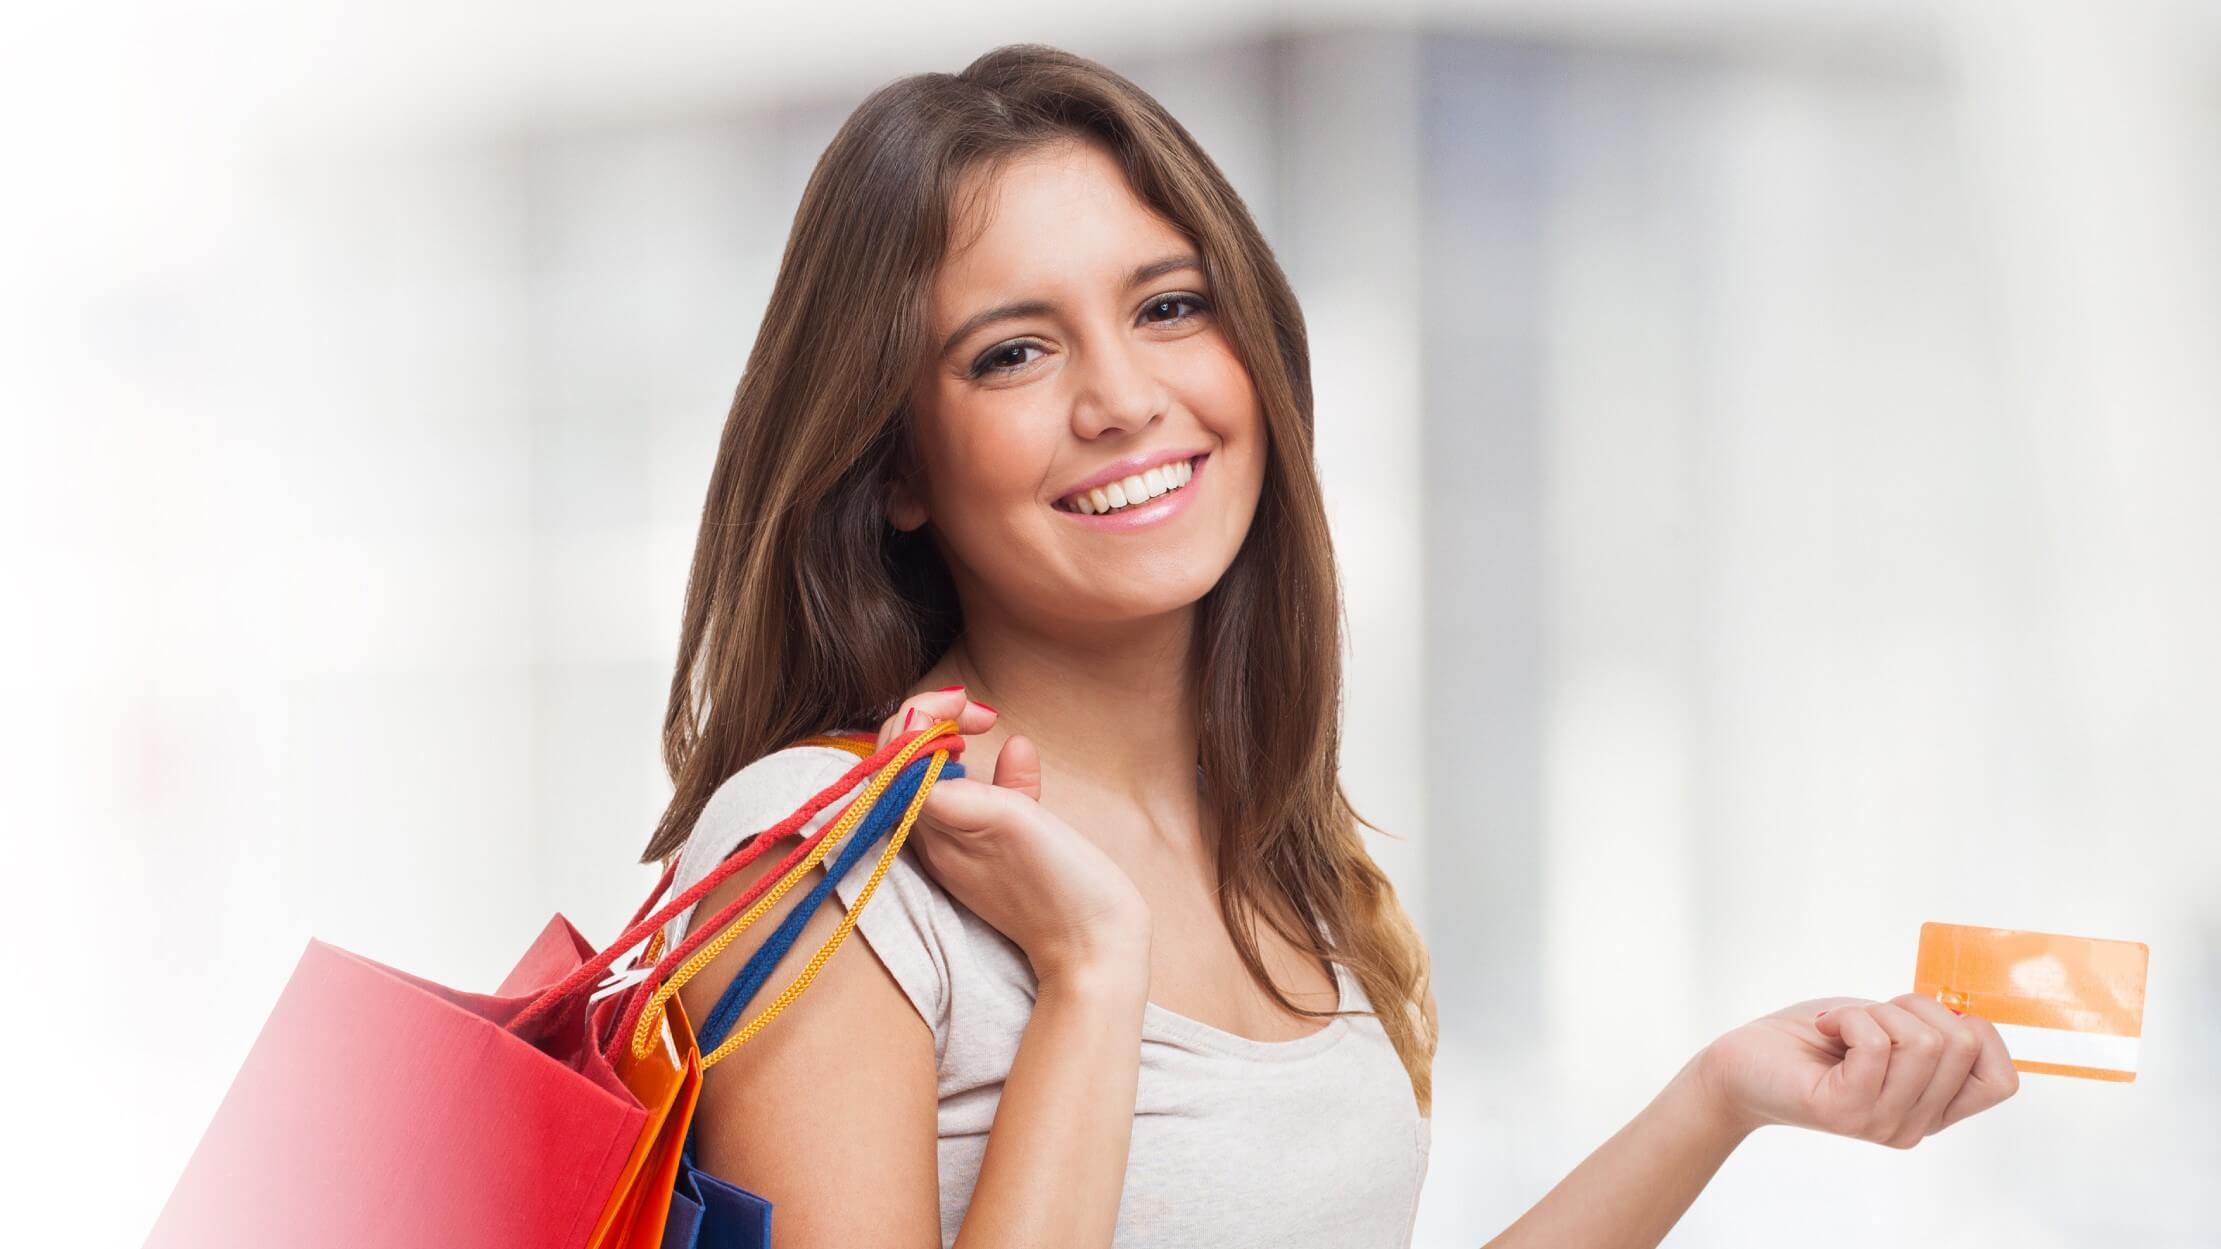 Leading Online Fashion Retailer transforms HR Operations with Oracle HCM Cloud